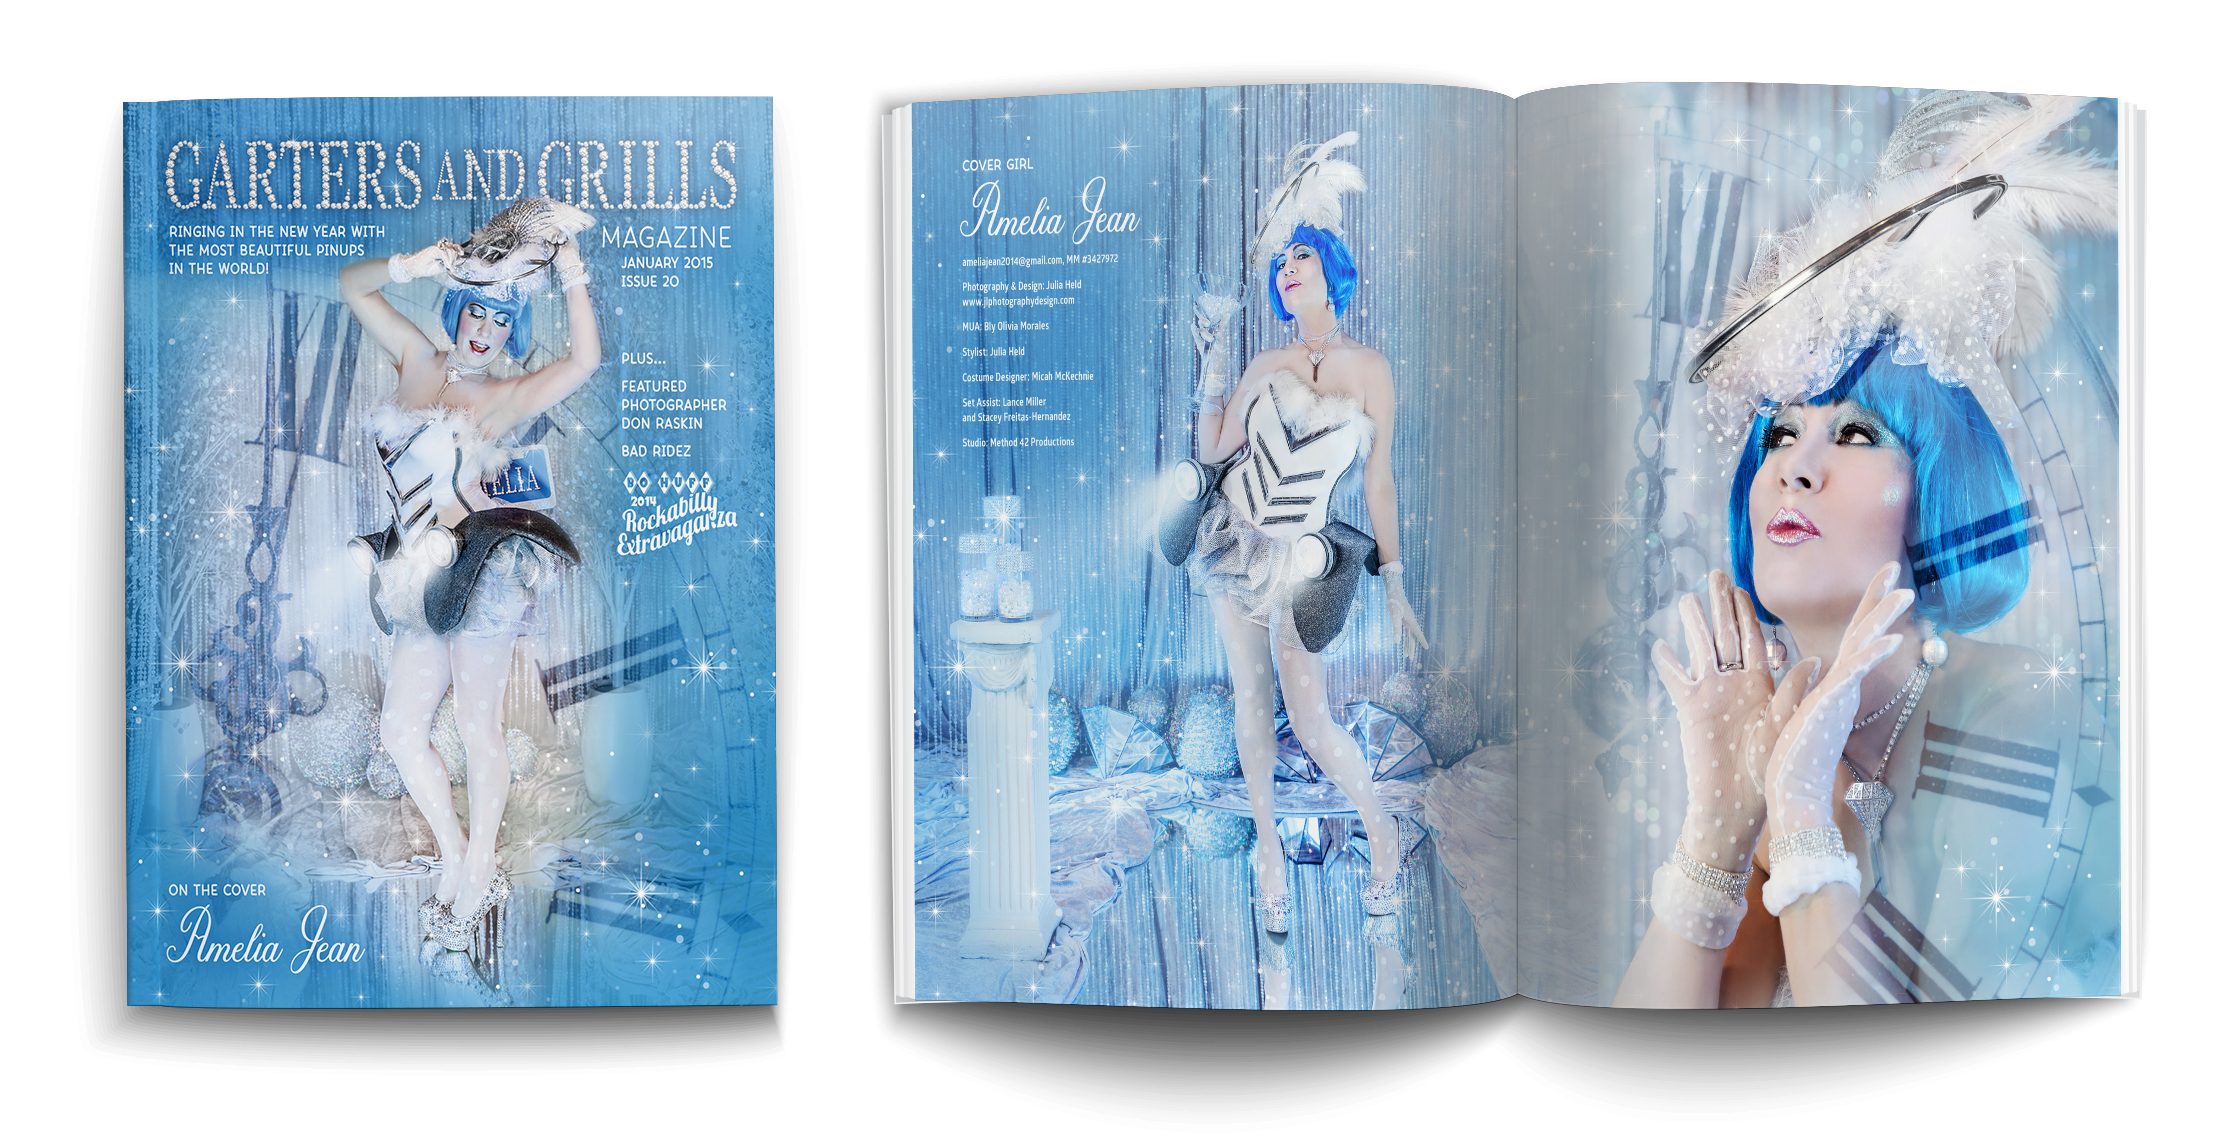 Garters_and_Grills_Magazine_January_2015_Amelia_Jean_Cover_Render1.png